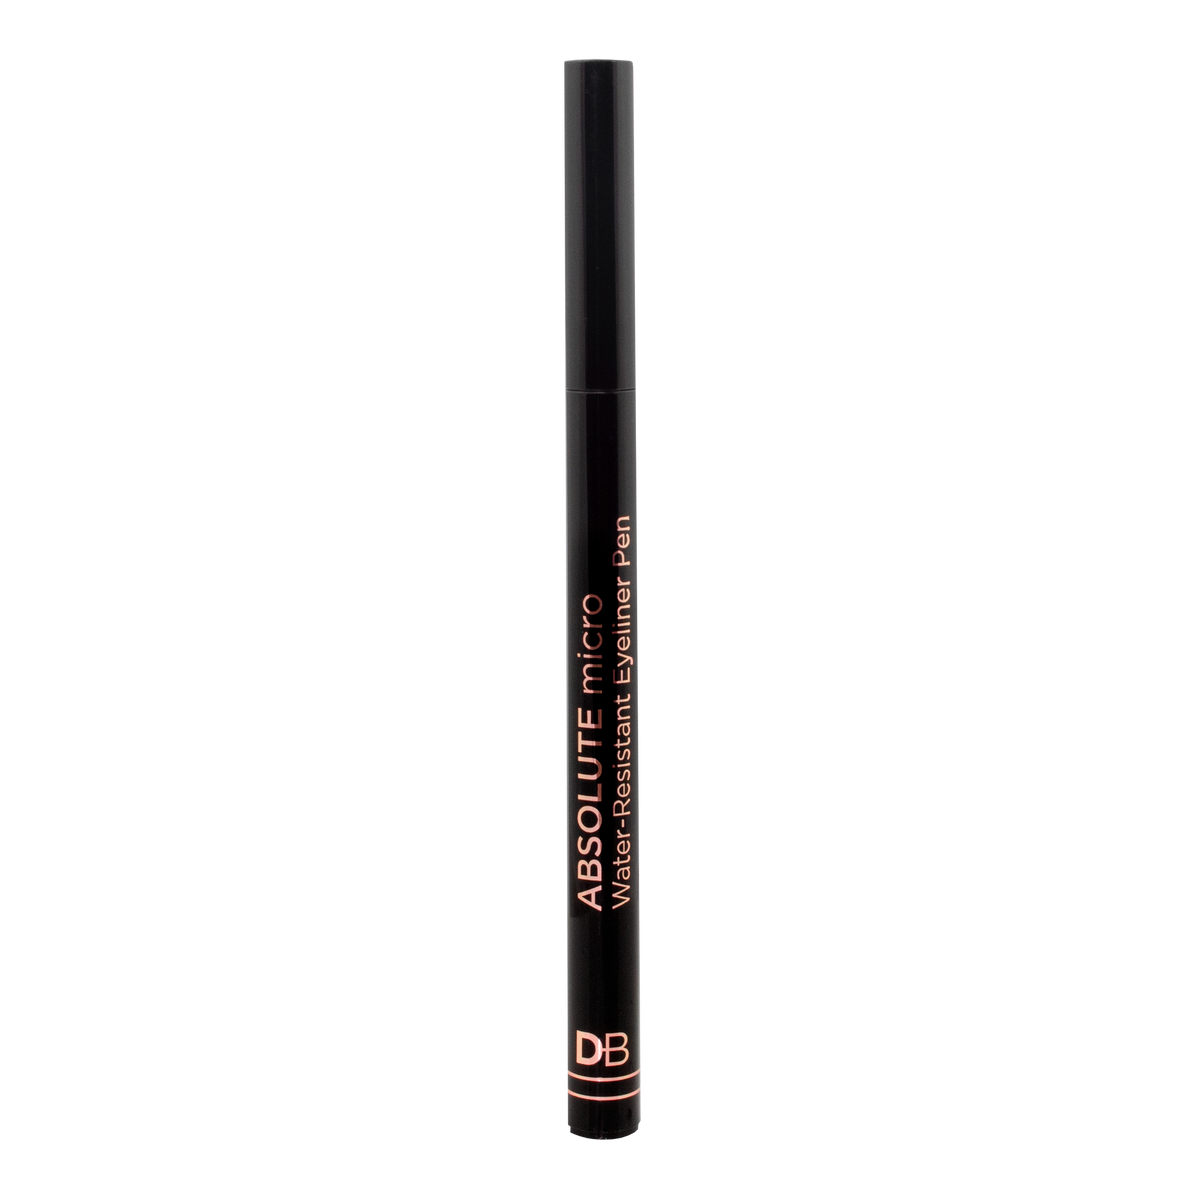 Absolute Micro Water-Resistant Eyeliner Pen